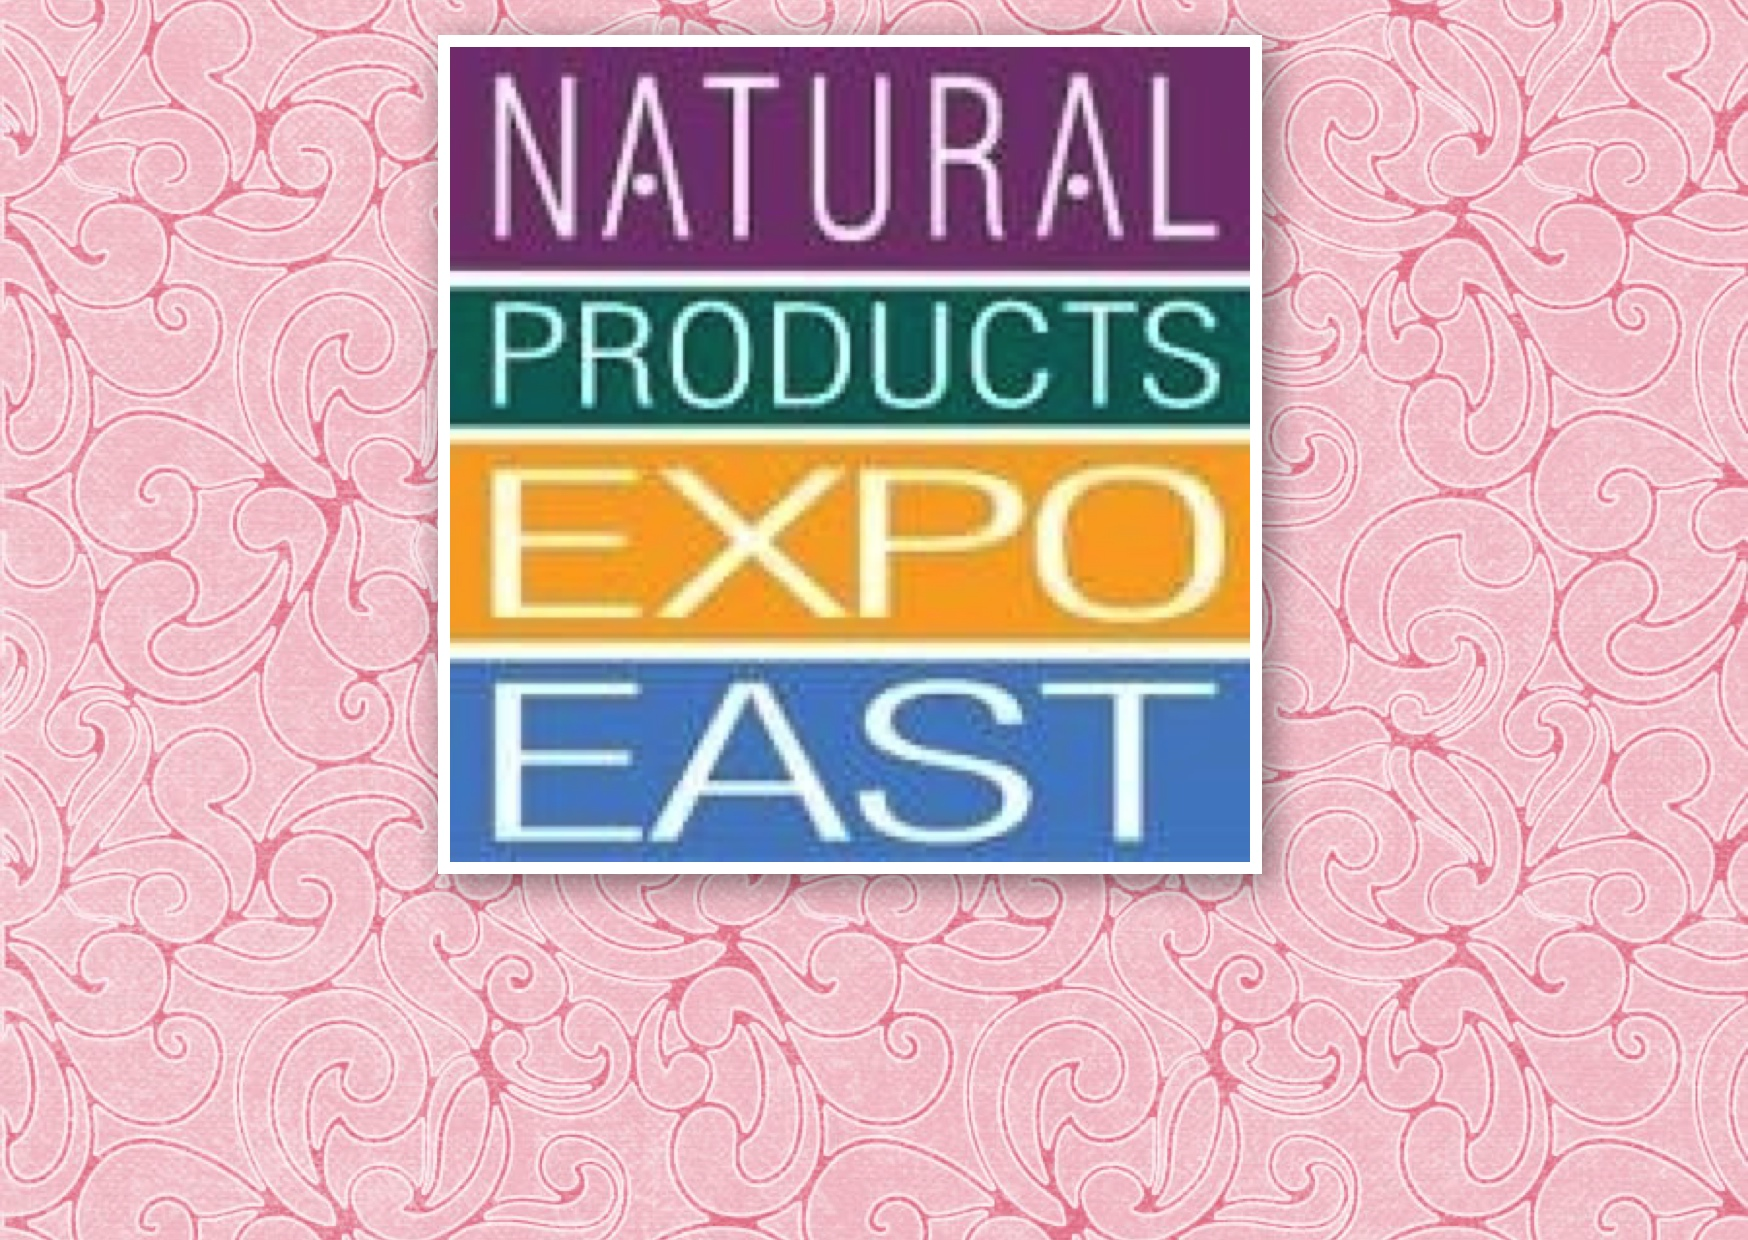 OUTSTANDing Products from EXPO EAST 2013 (part 1)